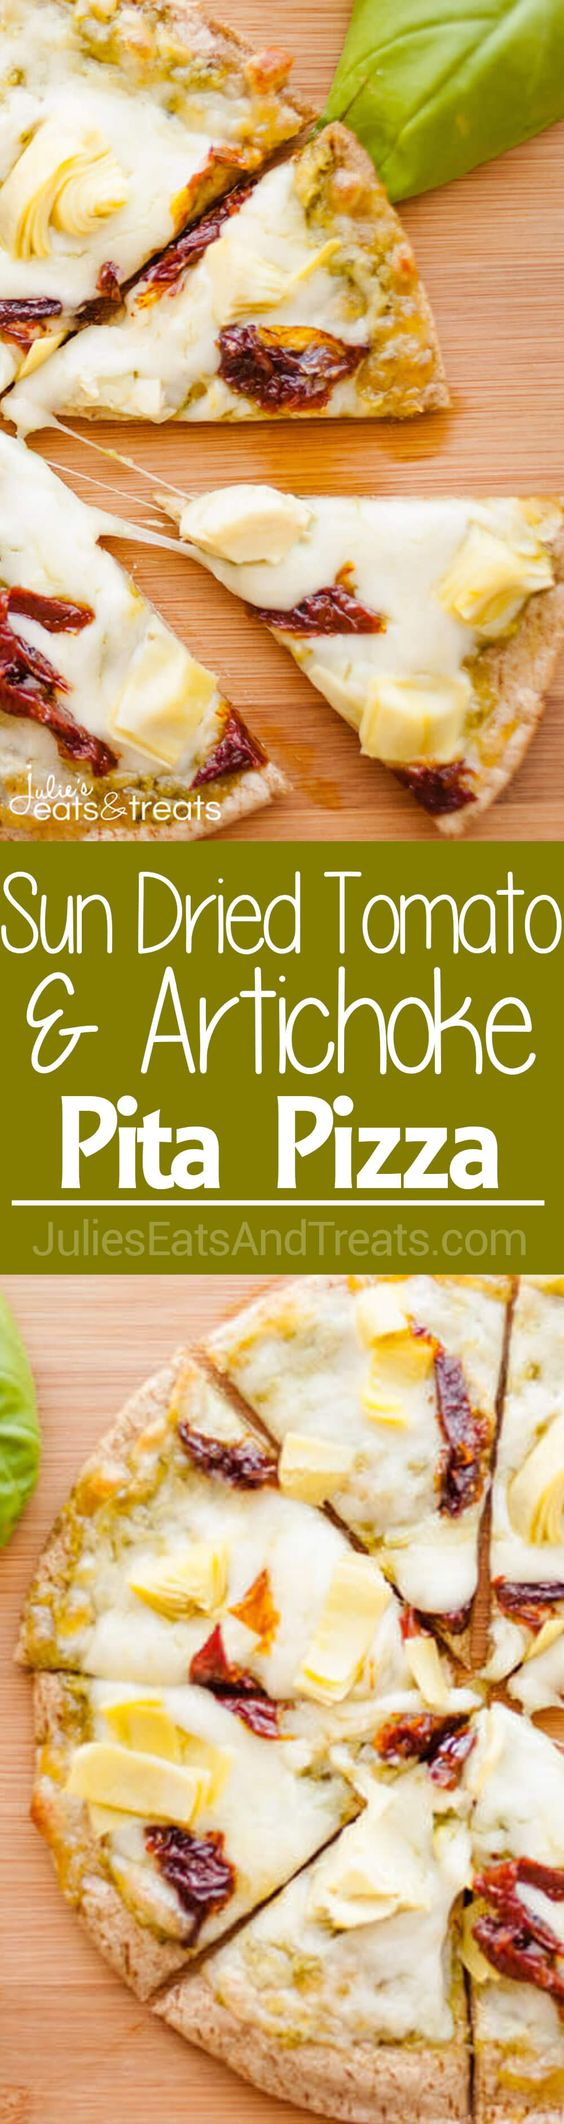 Sun-dried Tomato and Artichoke Pita Pizza ~ The Perfect Light Lunch Packed with Flavor! Only Ten Minutes and these are ready to eat! ~ http://www.julieseatsandtreats.com